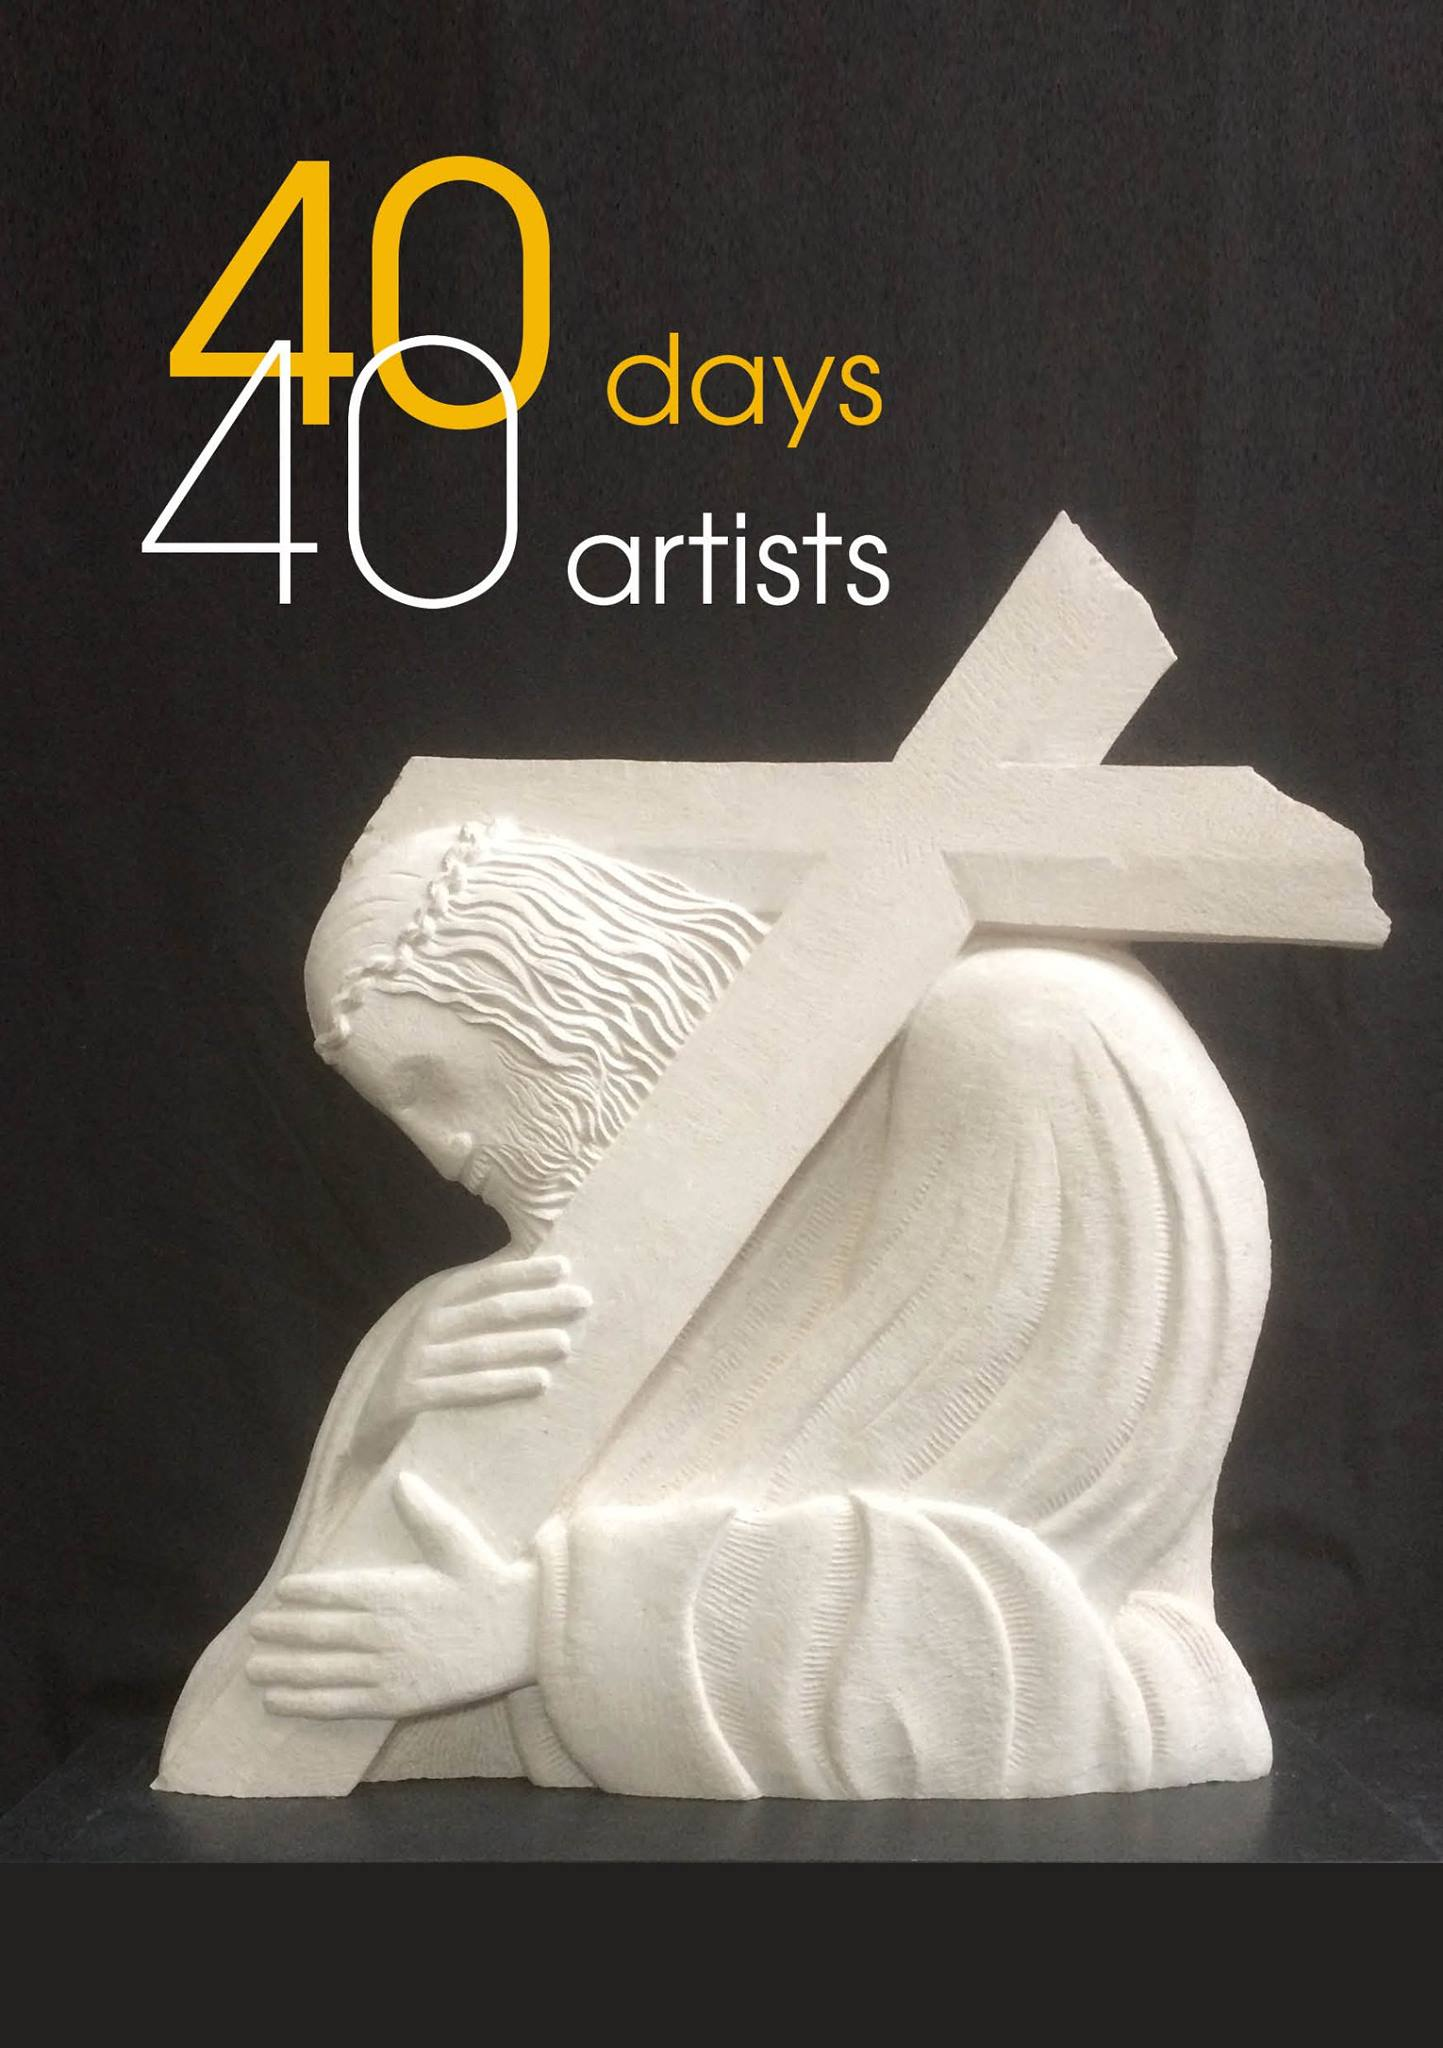 Poster Image for 40 days 40 Artists exhibition